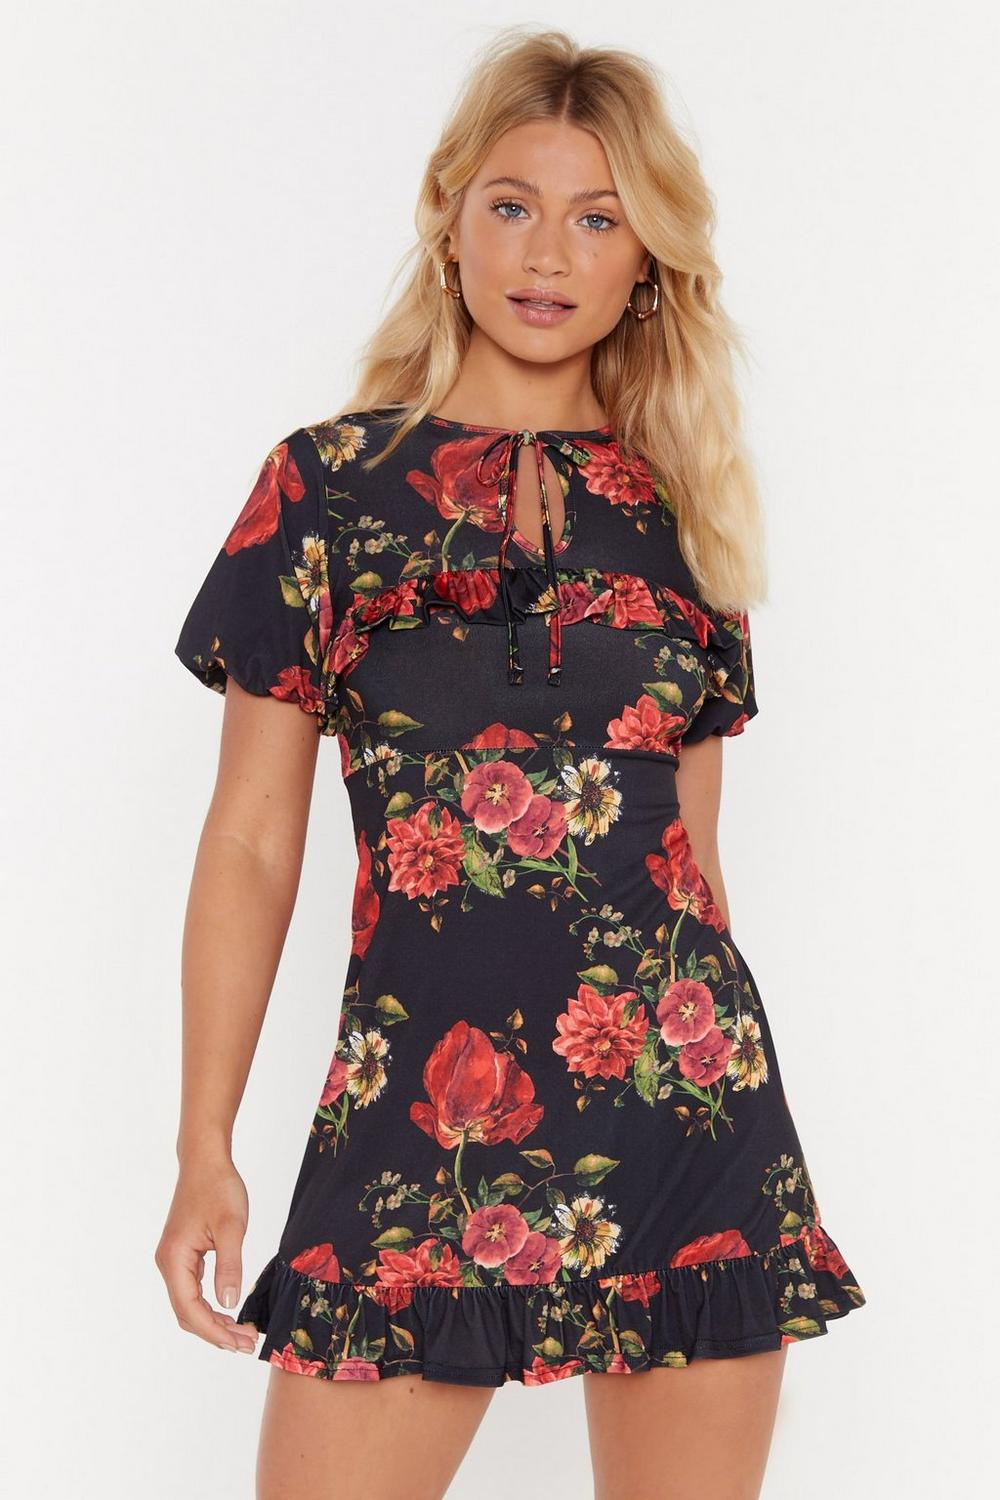 Cut It Out Floral Mini Dress by Nasty Gal